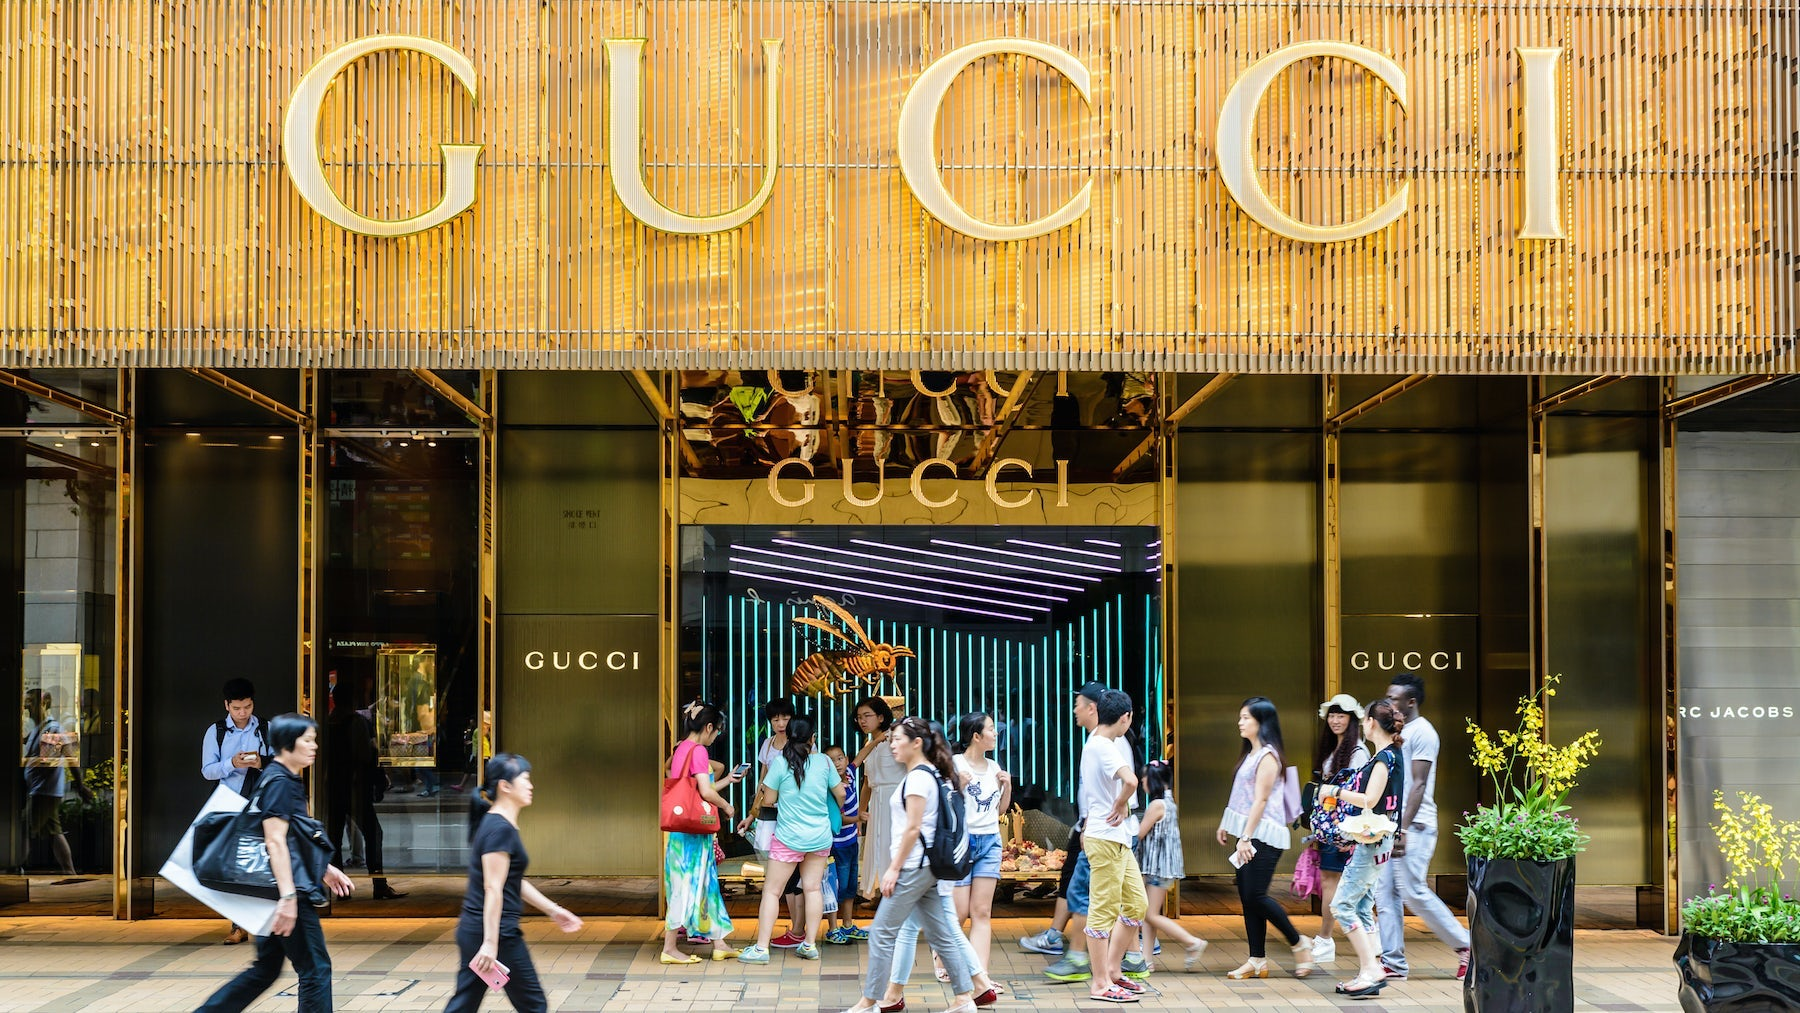 Chinese shoppers at Gucci. Shutterstock.